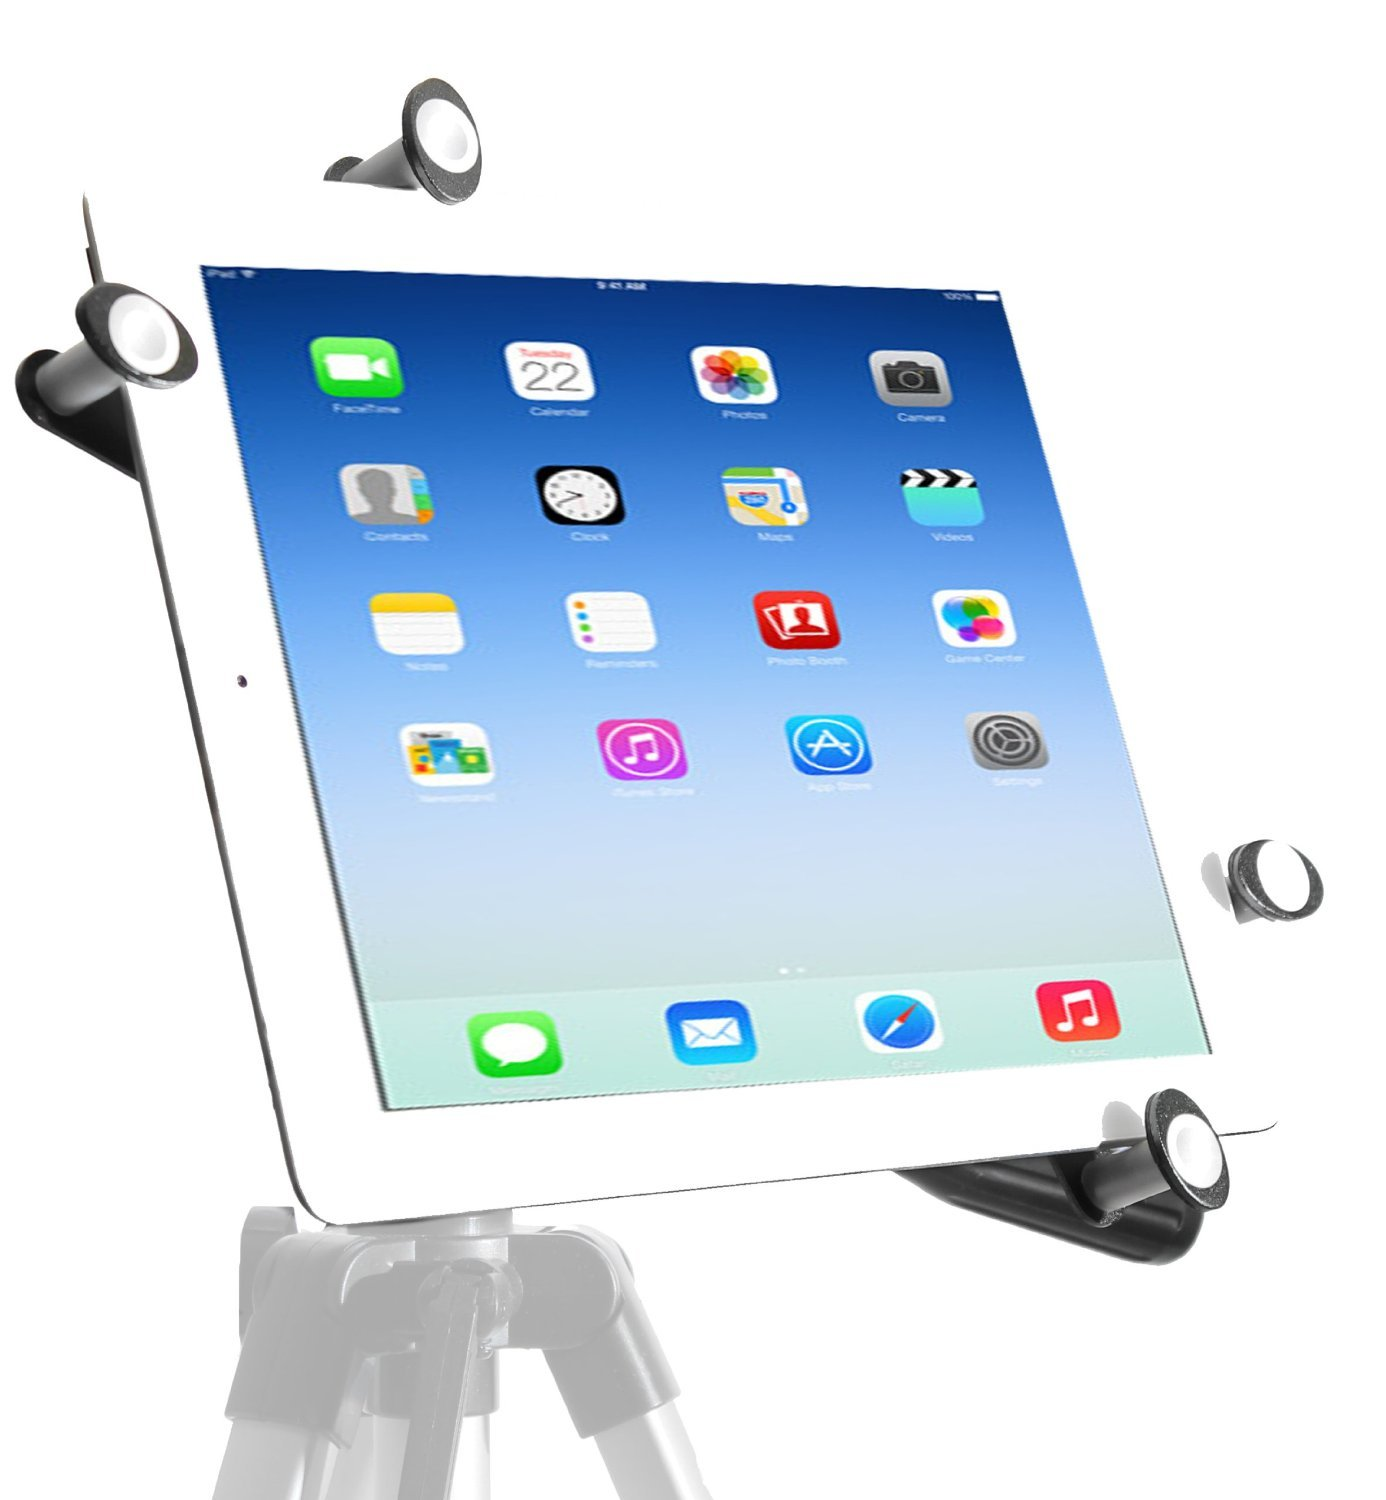 iShot Pro G7 Pro Universal Tablet Tripod Mount Adapter Holder Bracket Works with Most Cases & Sleeves Even Thick Otter Box Cases - Rock Solid All Metal Frame Fits 5-11 inch Tablet Computers